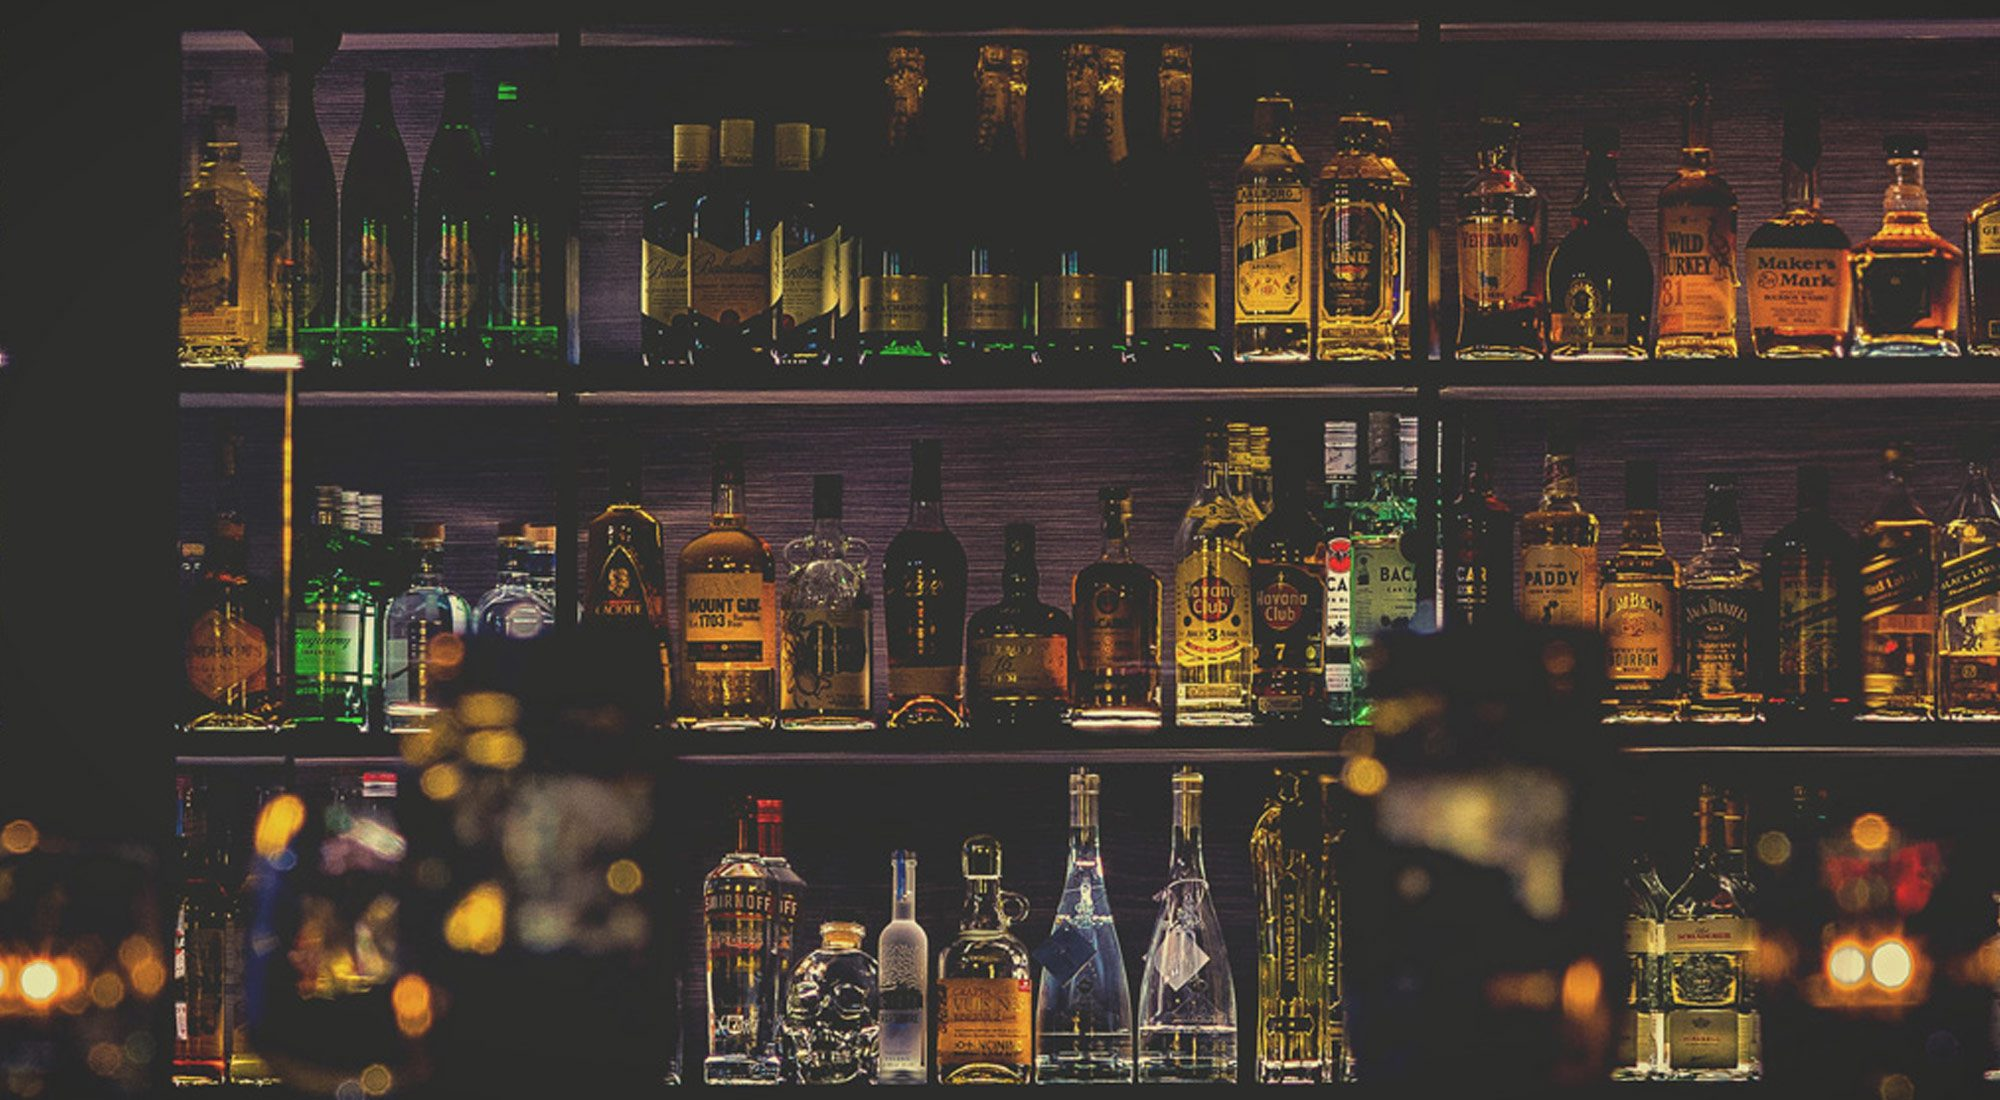 Bar with many bottles